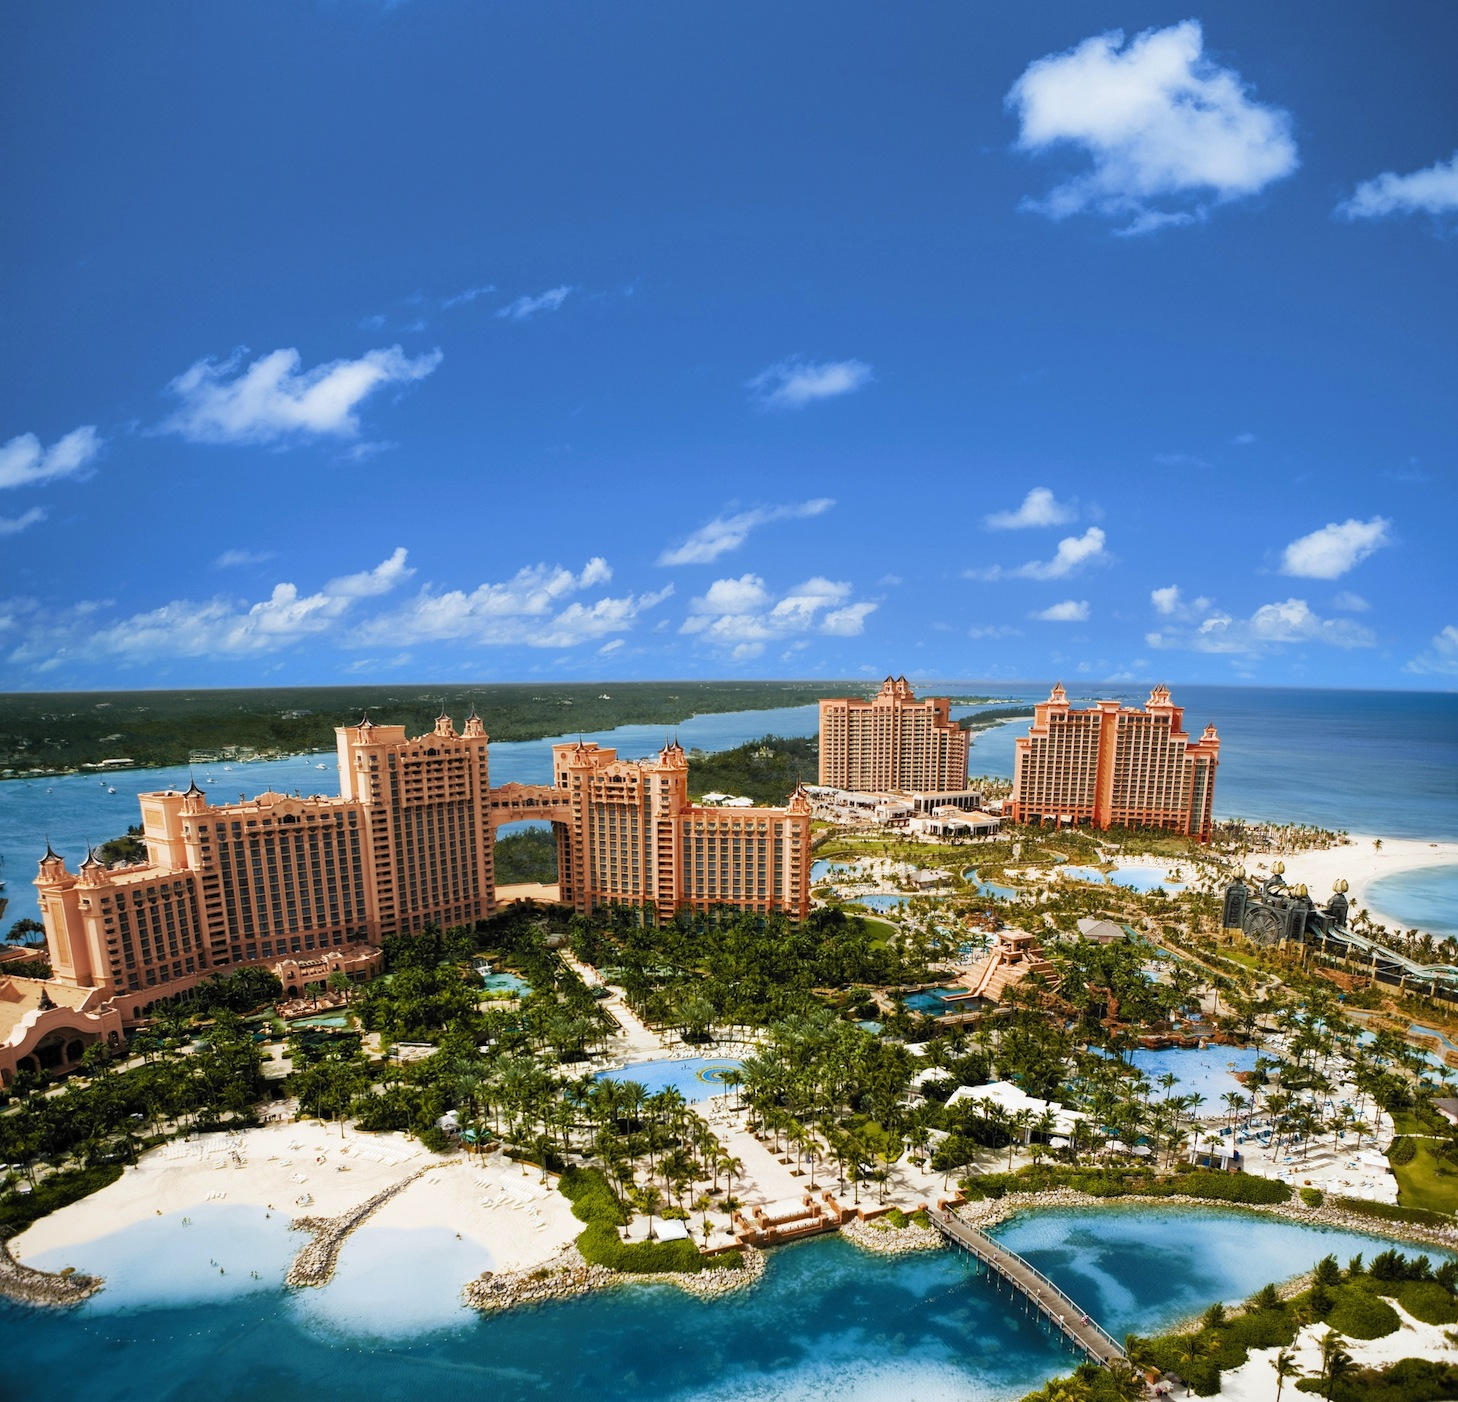 The Atlantis Resort In Bahamas With Its Stunning Beaches